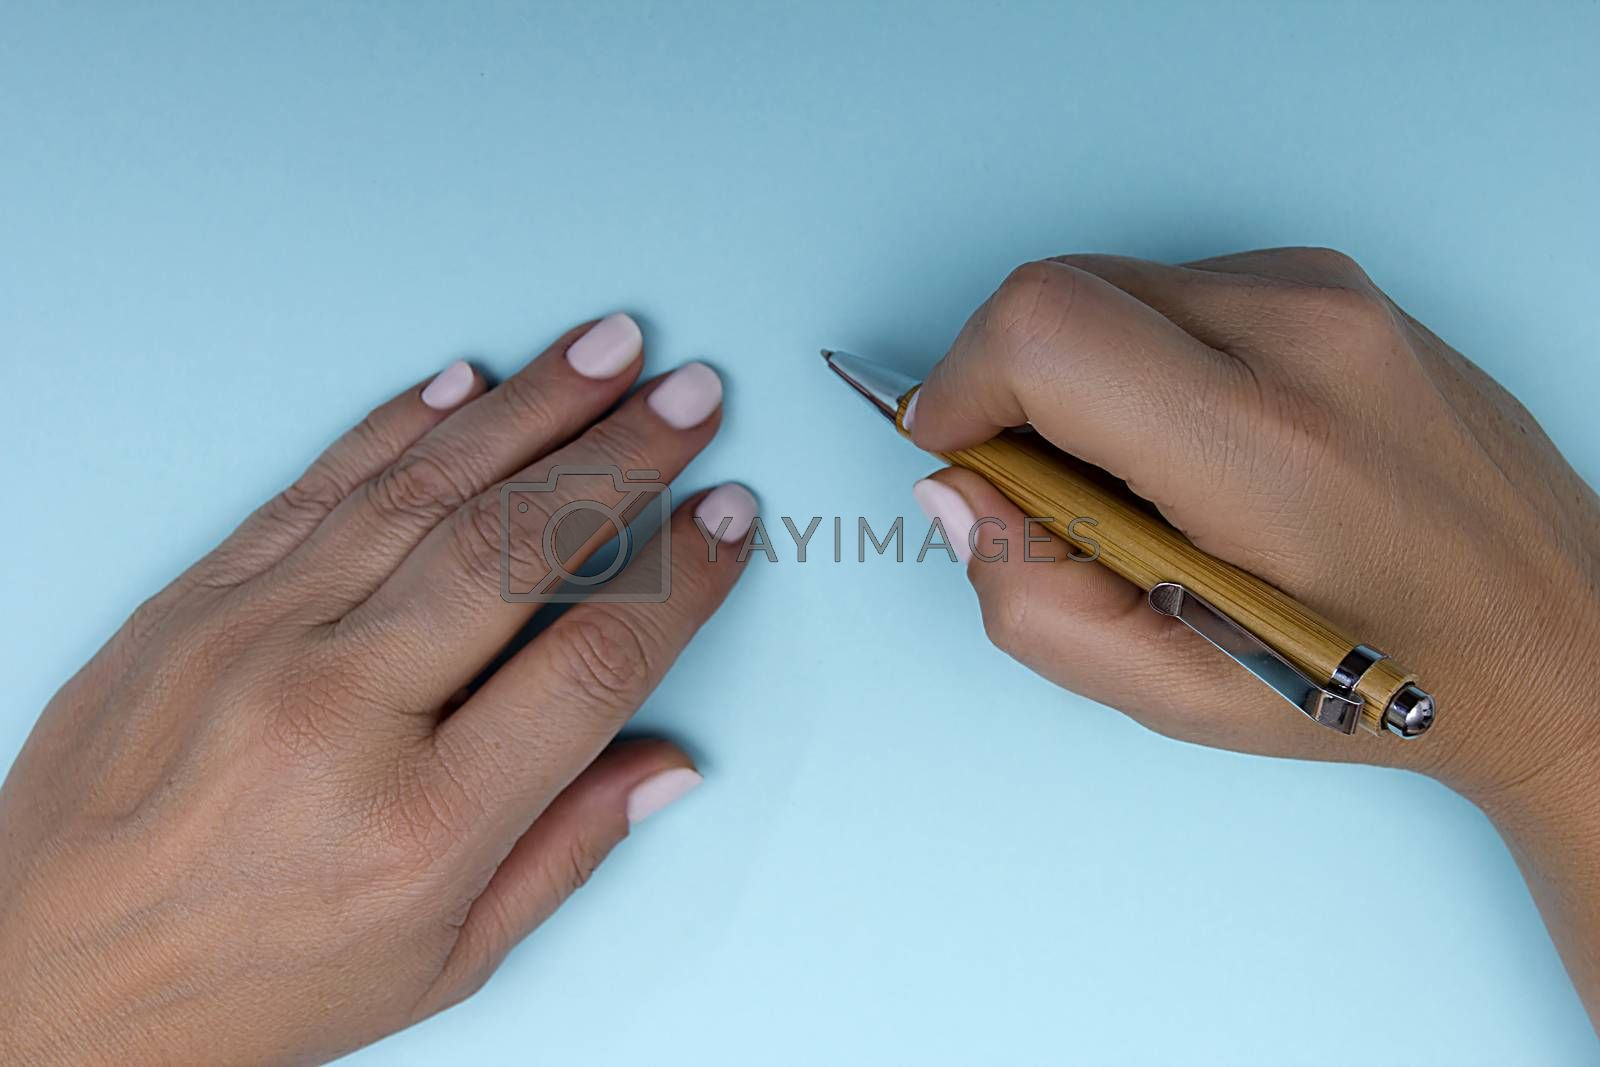 Pen in female hands on a blue background